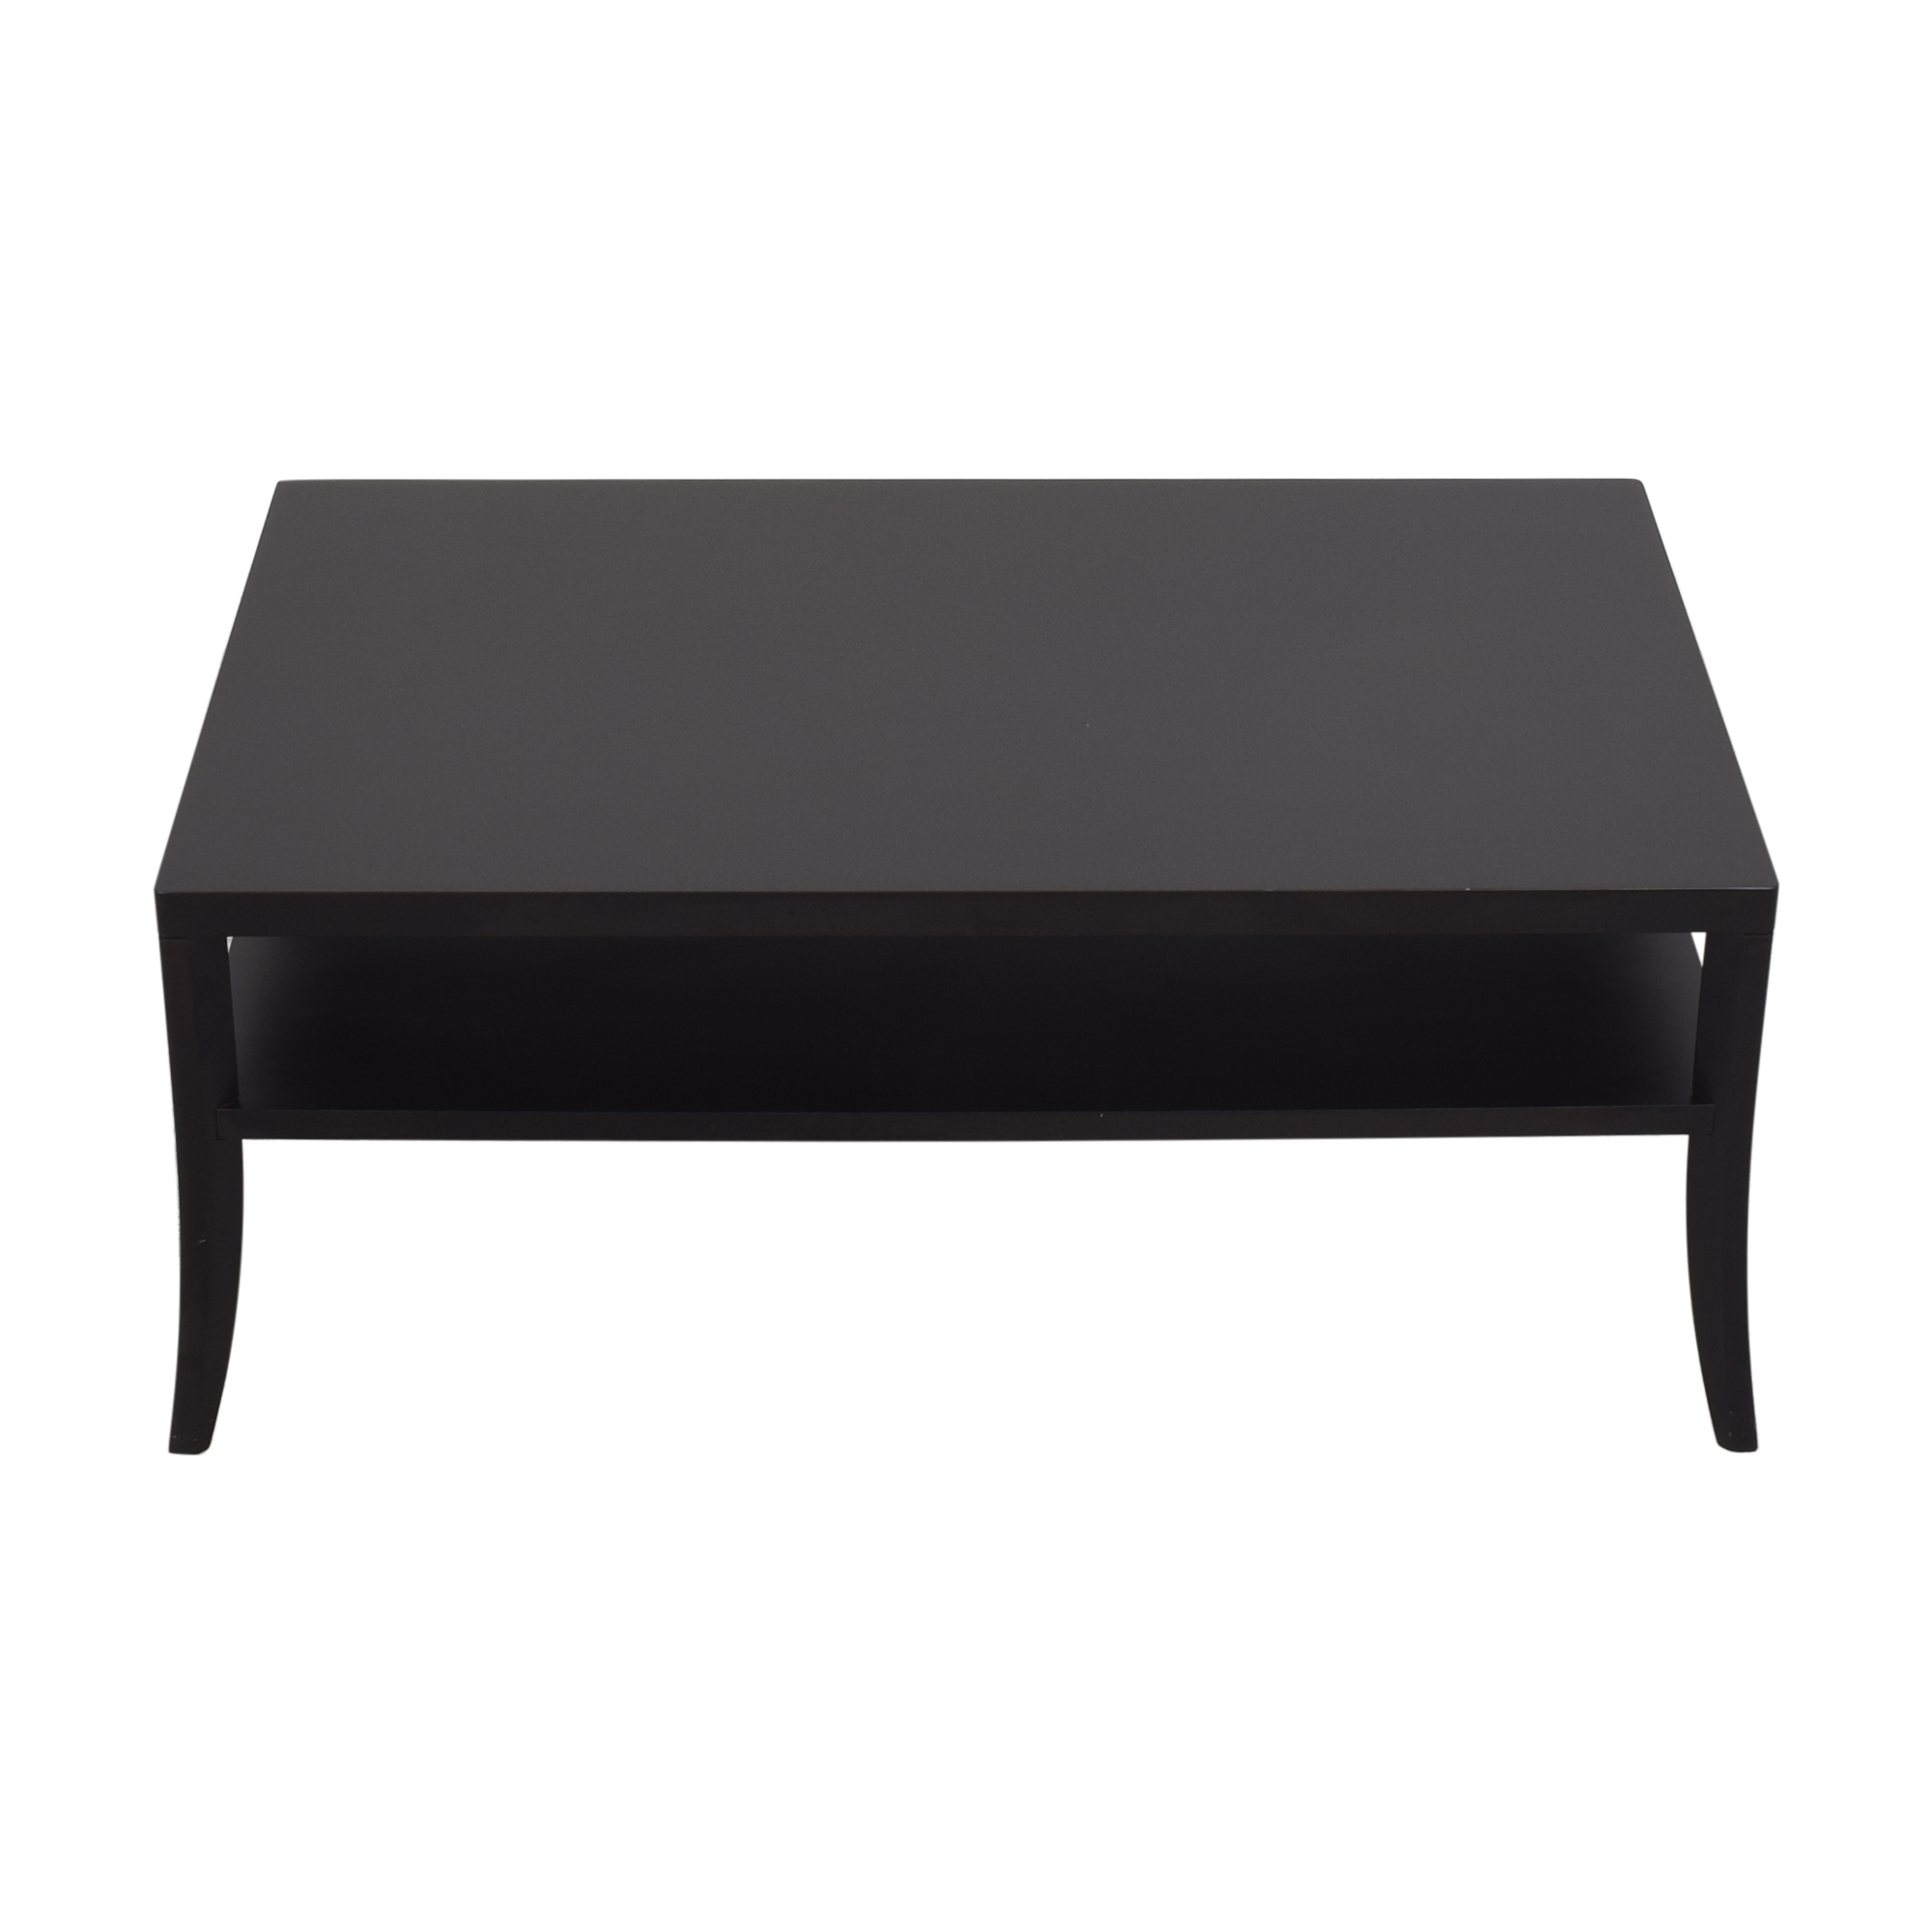 Baronet Baronet Two Tier Coffee Table dimensions